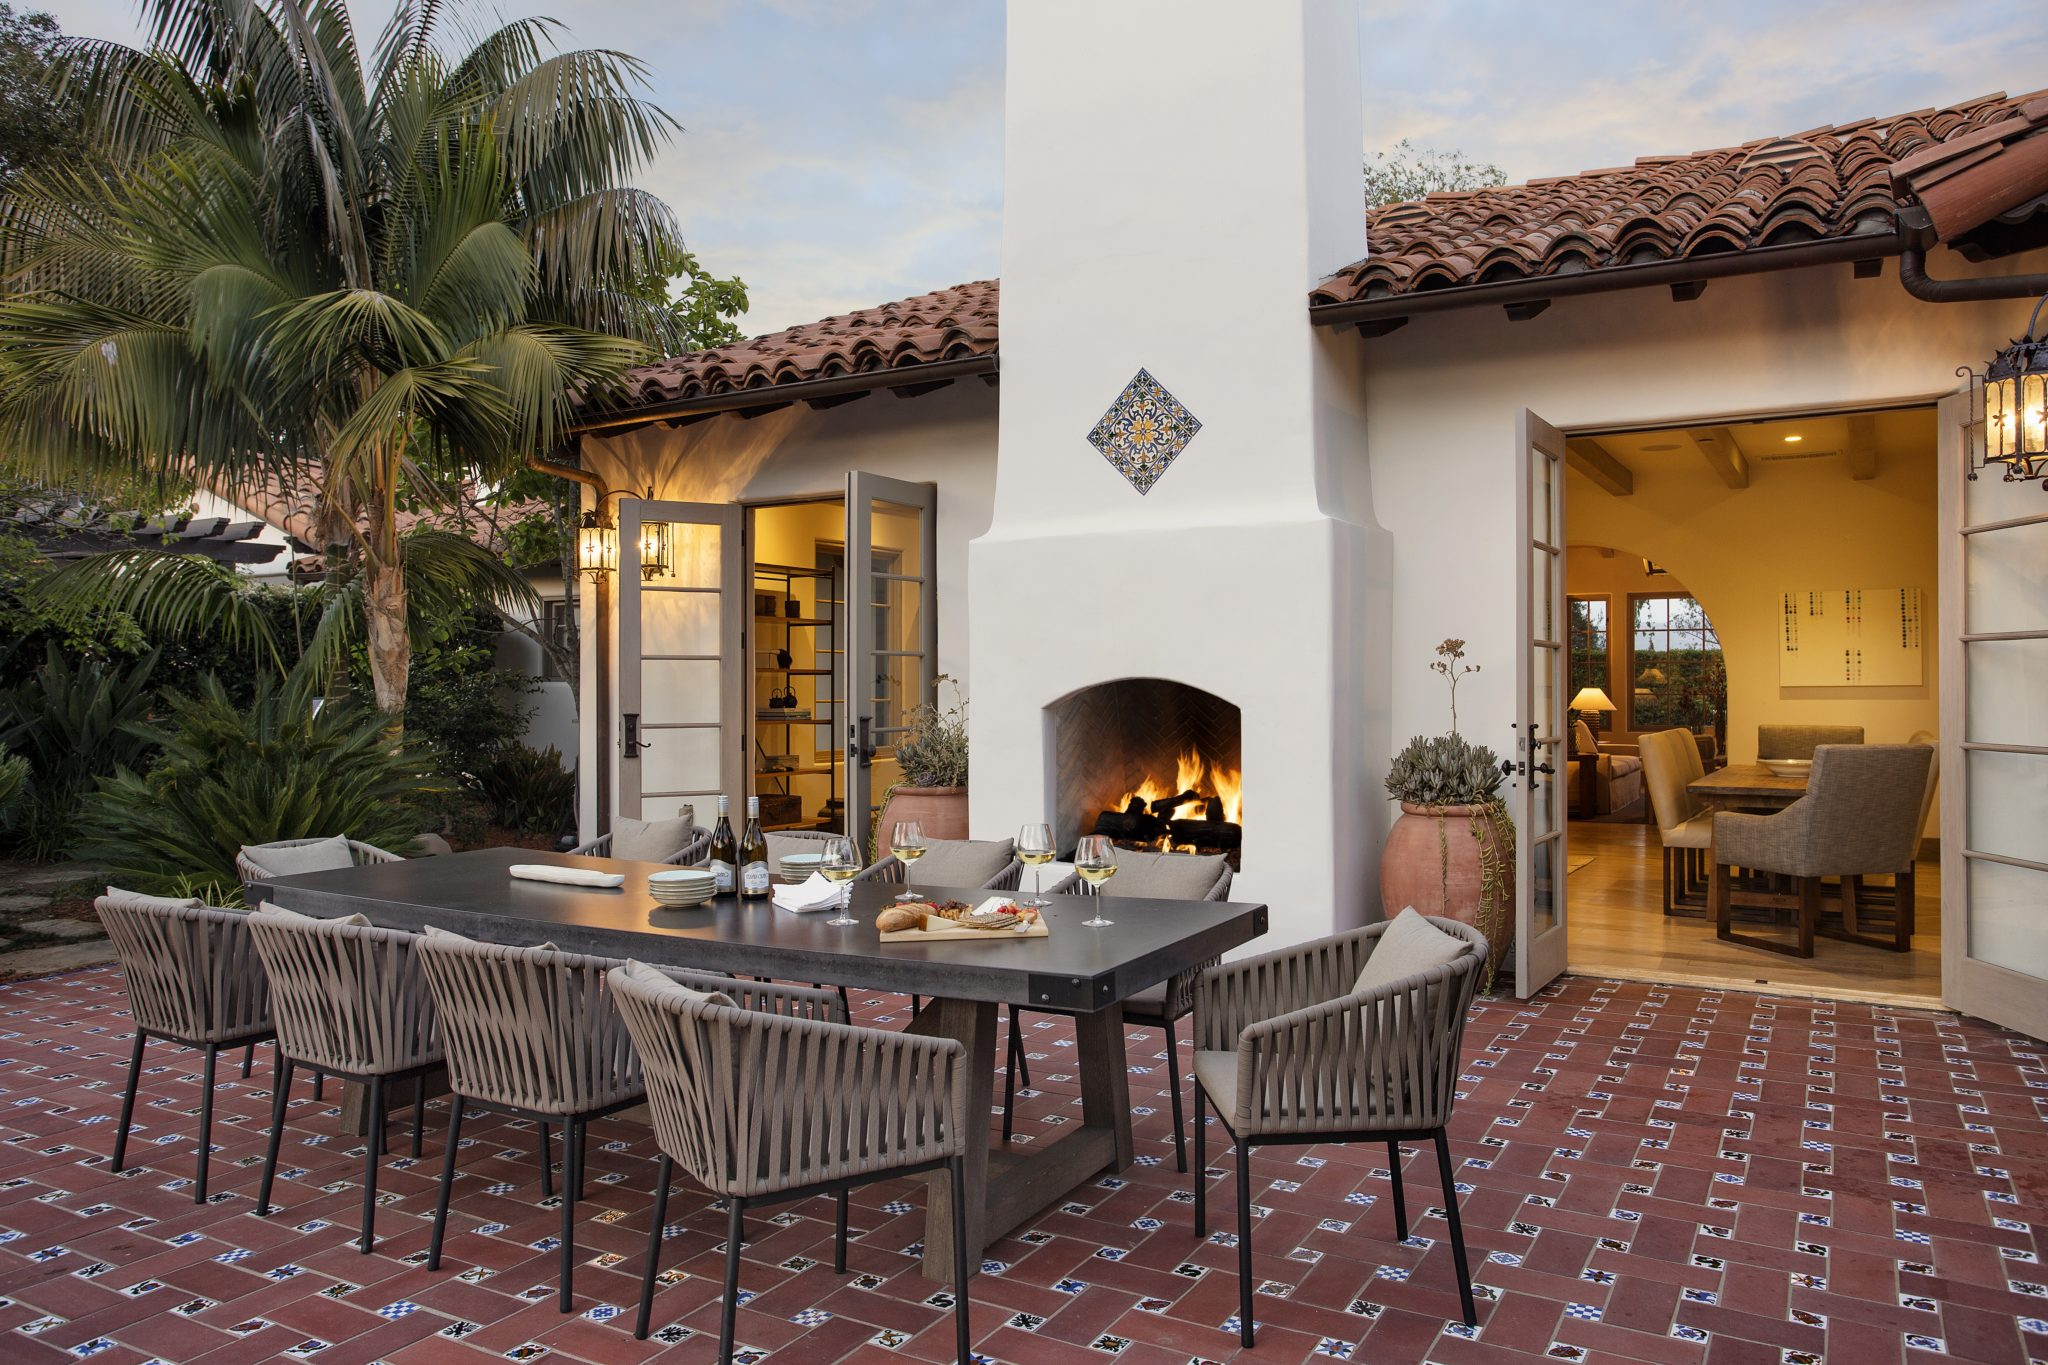 Montecito Outdoor Living Space by Della + Zella Interiors